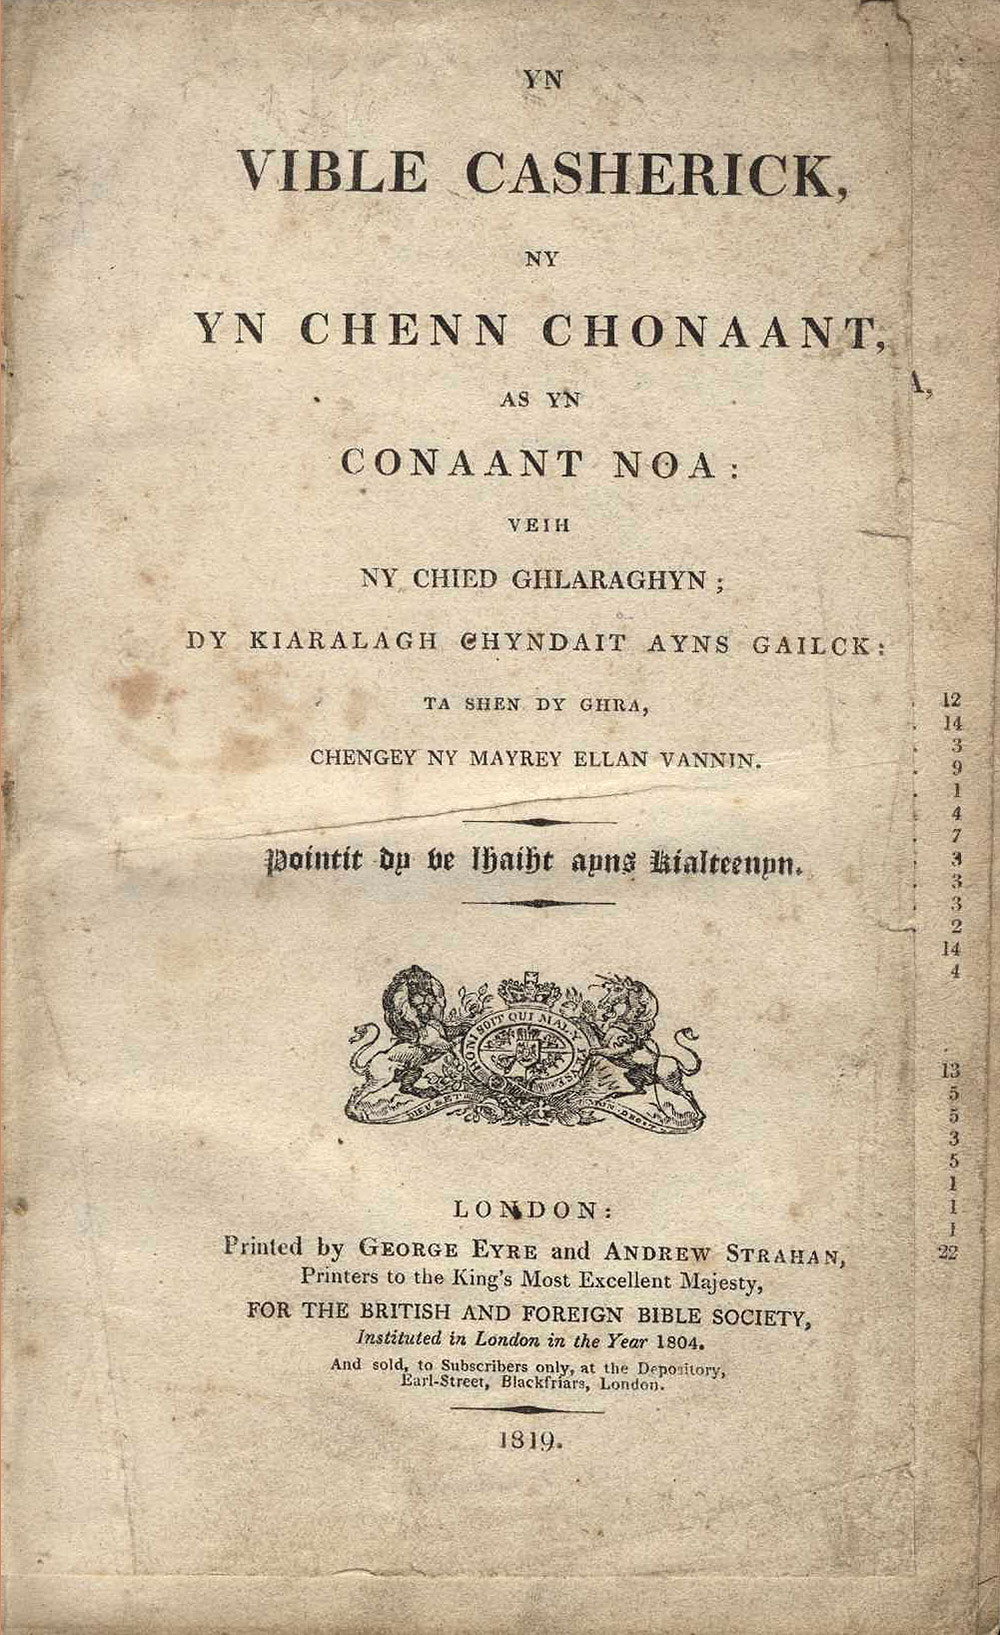 [Bible in Manx]. <em>Yn Vible Casherick: ny yn Chenn Chonaant, as yn Conaant Noa …</em> London: George Eyre and Andrew Strahan for the British and Foreign Bible Society, 1819.